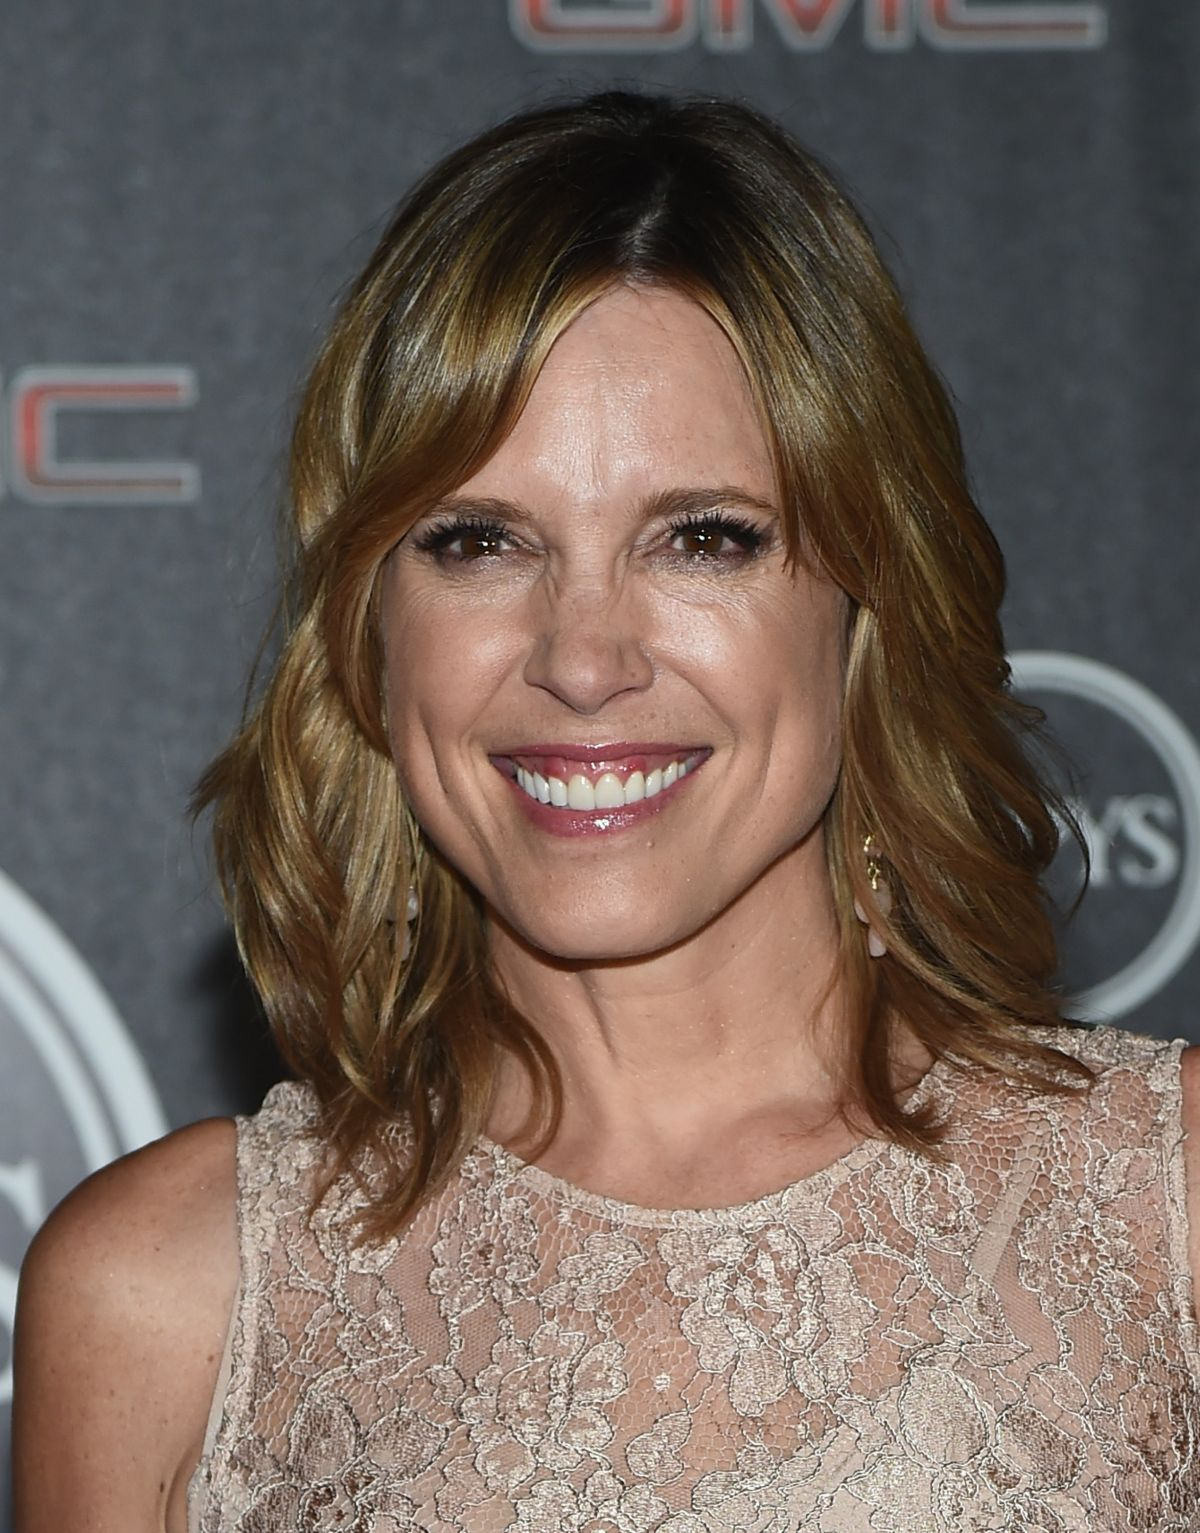 HANNAH STORM at ESPN Presents Body at ESPYS